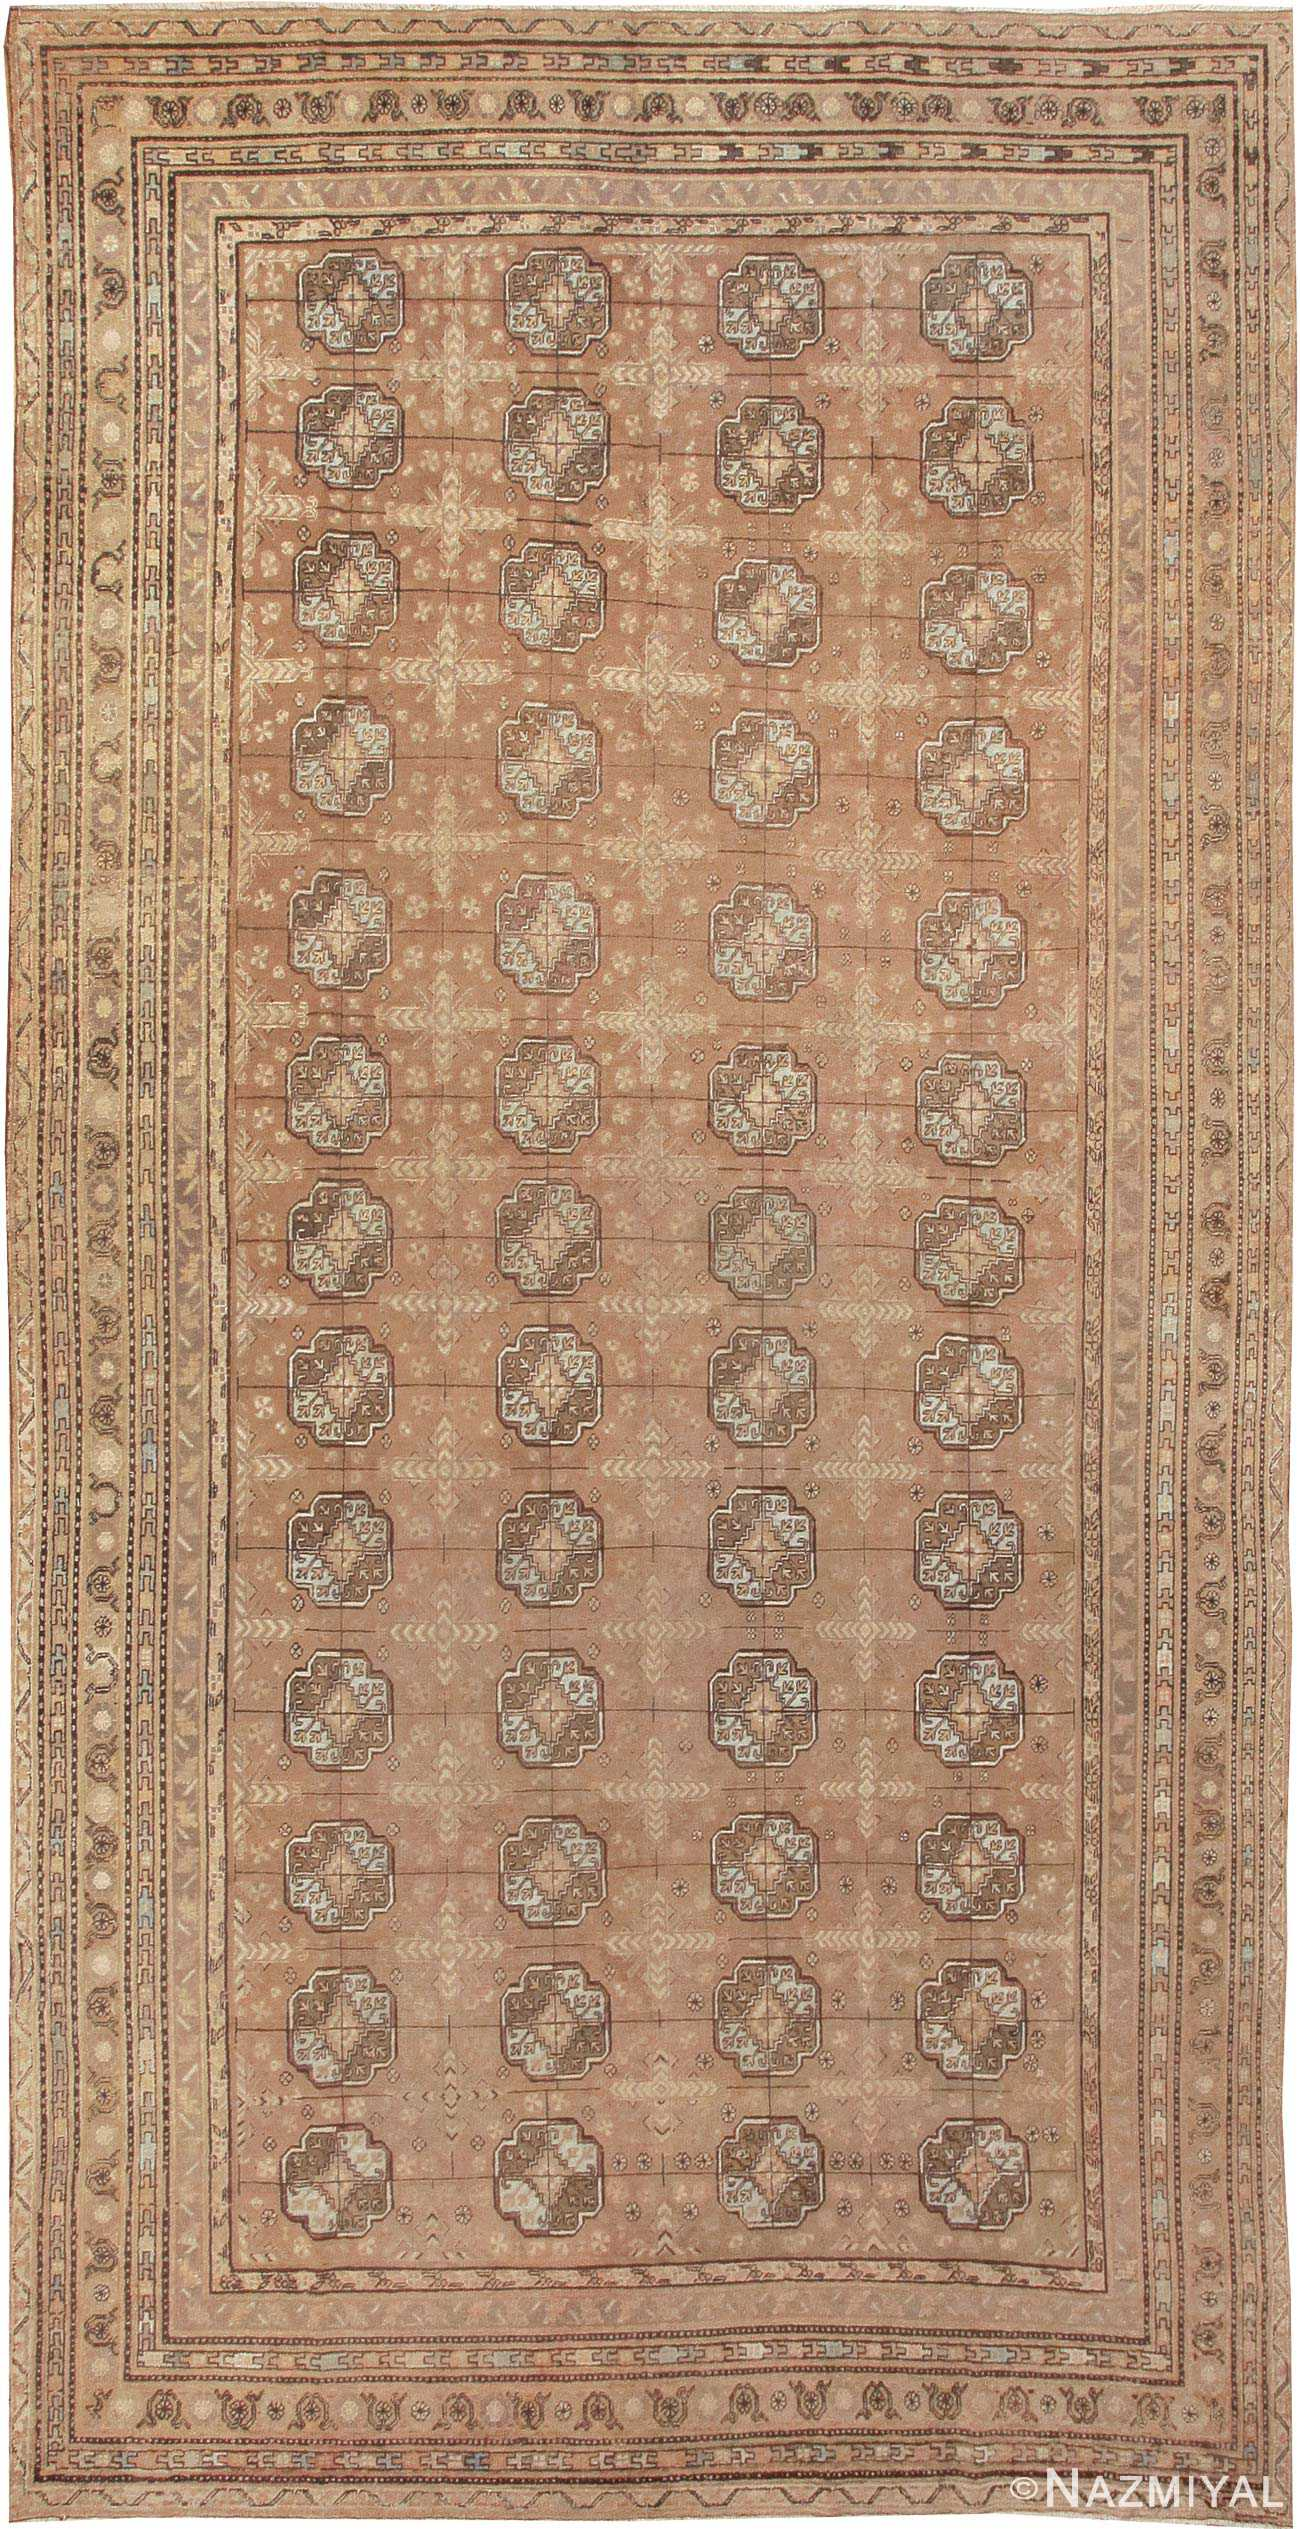 Antique Khotan Oriental Rug 42526 Nazmiyal